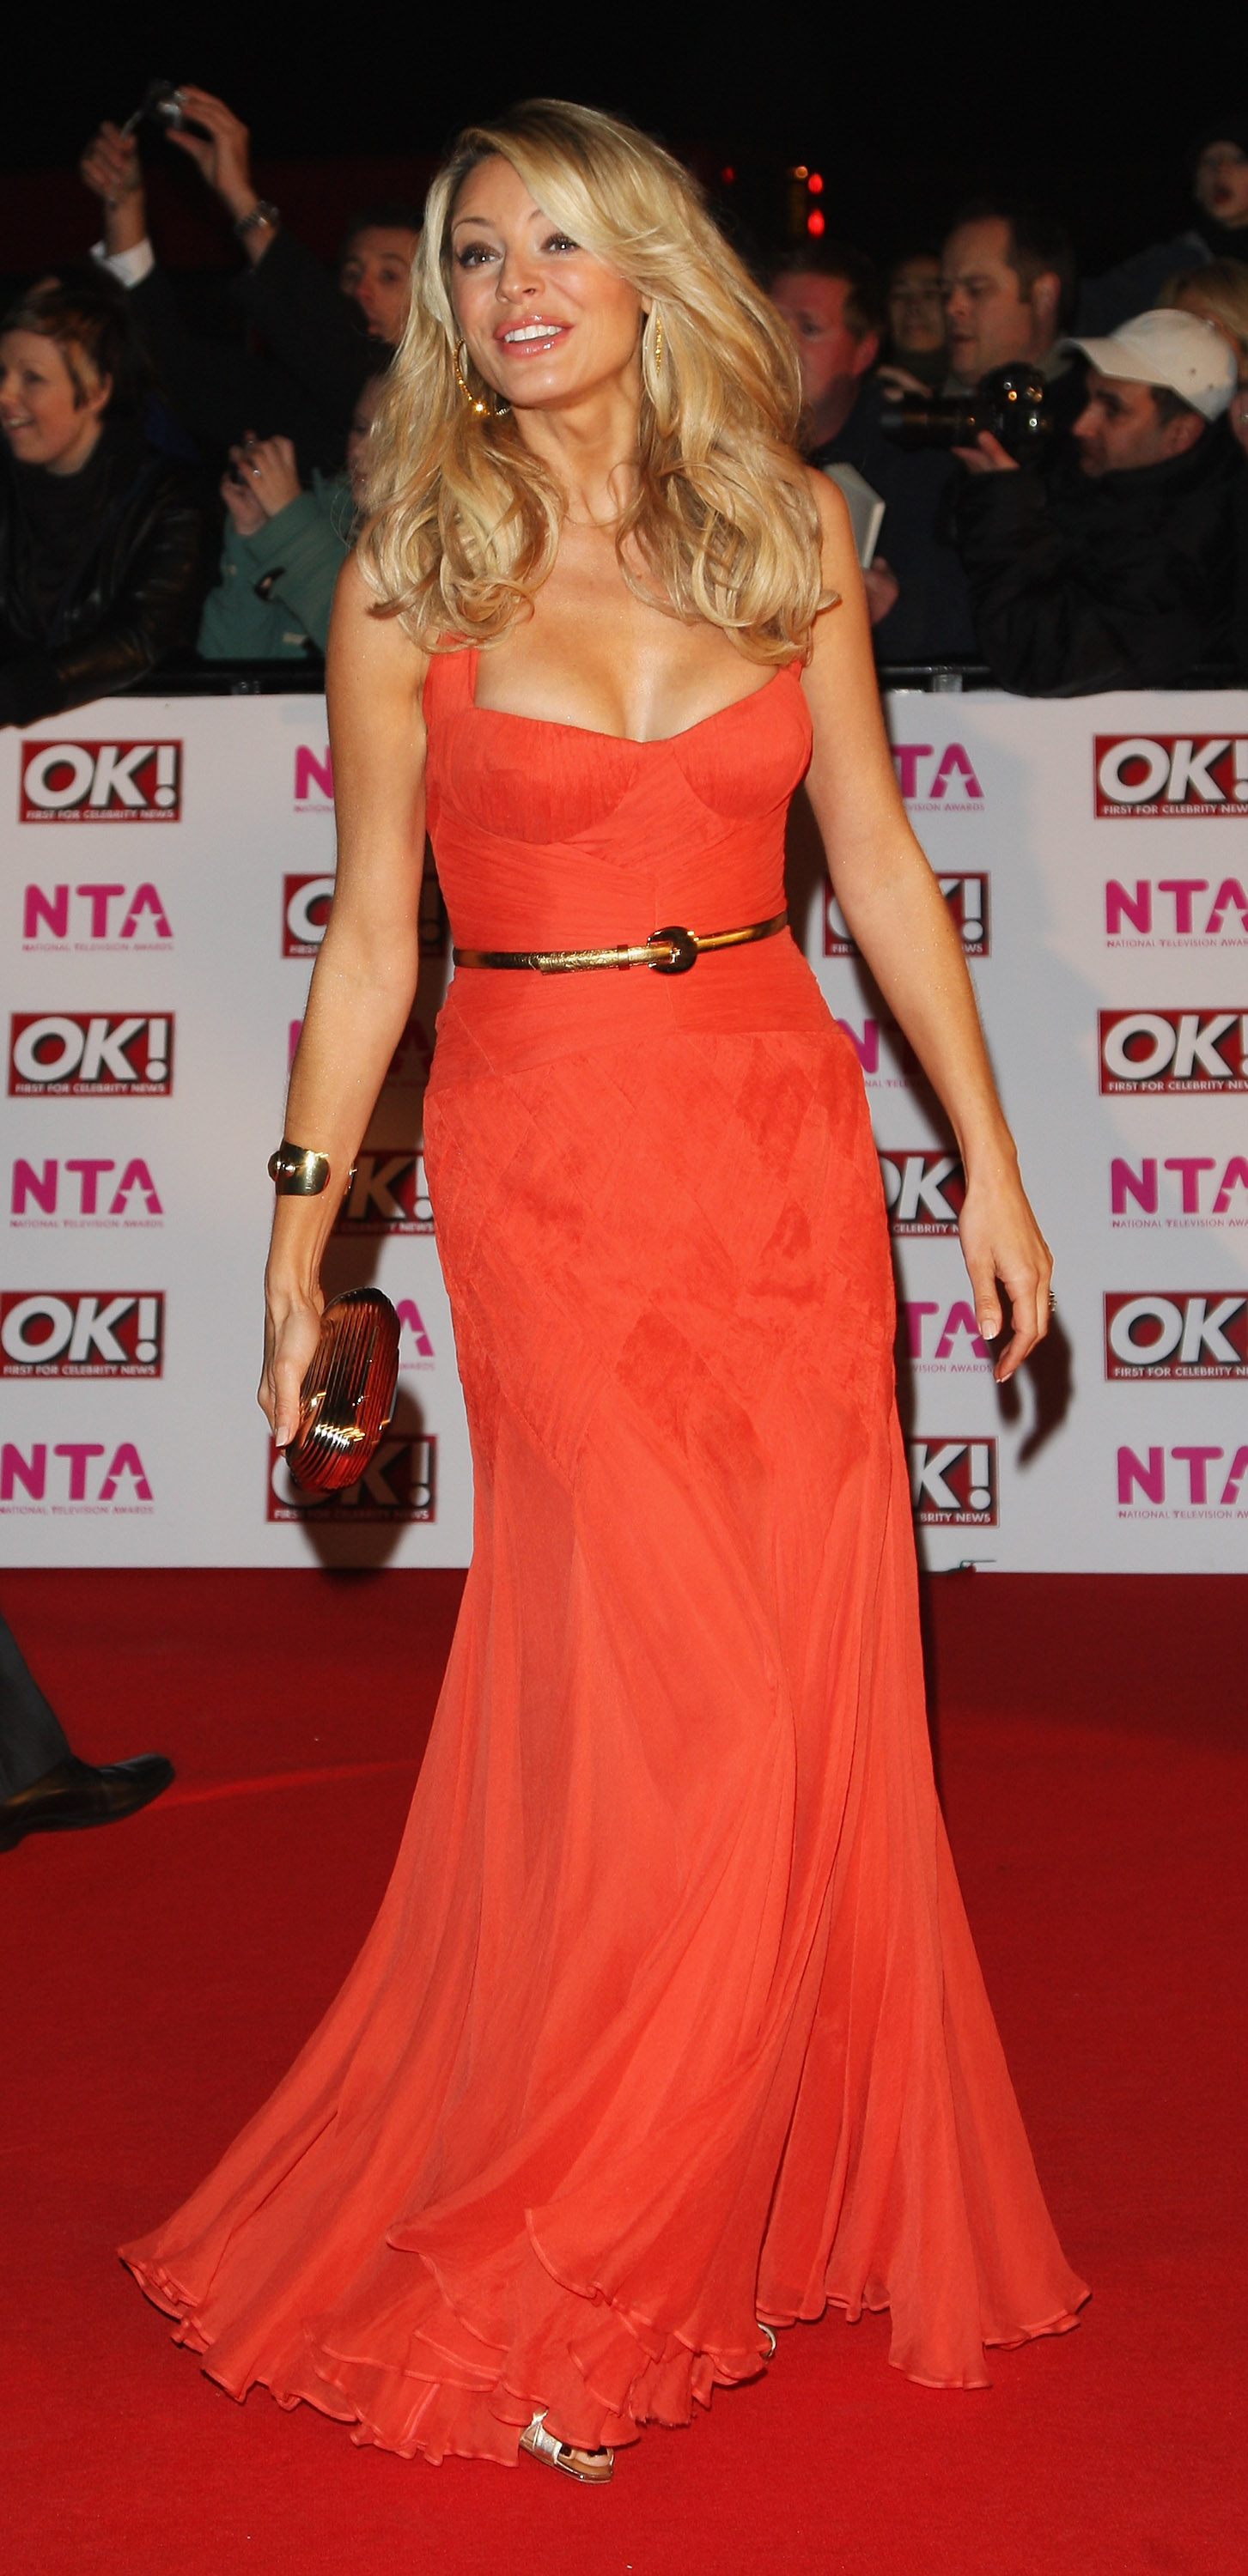 18408_Celebutopia-Tess_Daly_arrives_at_the_2008_National_Television_Awards-02_122_956lo.jpg